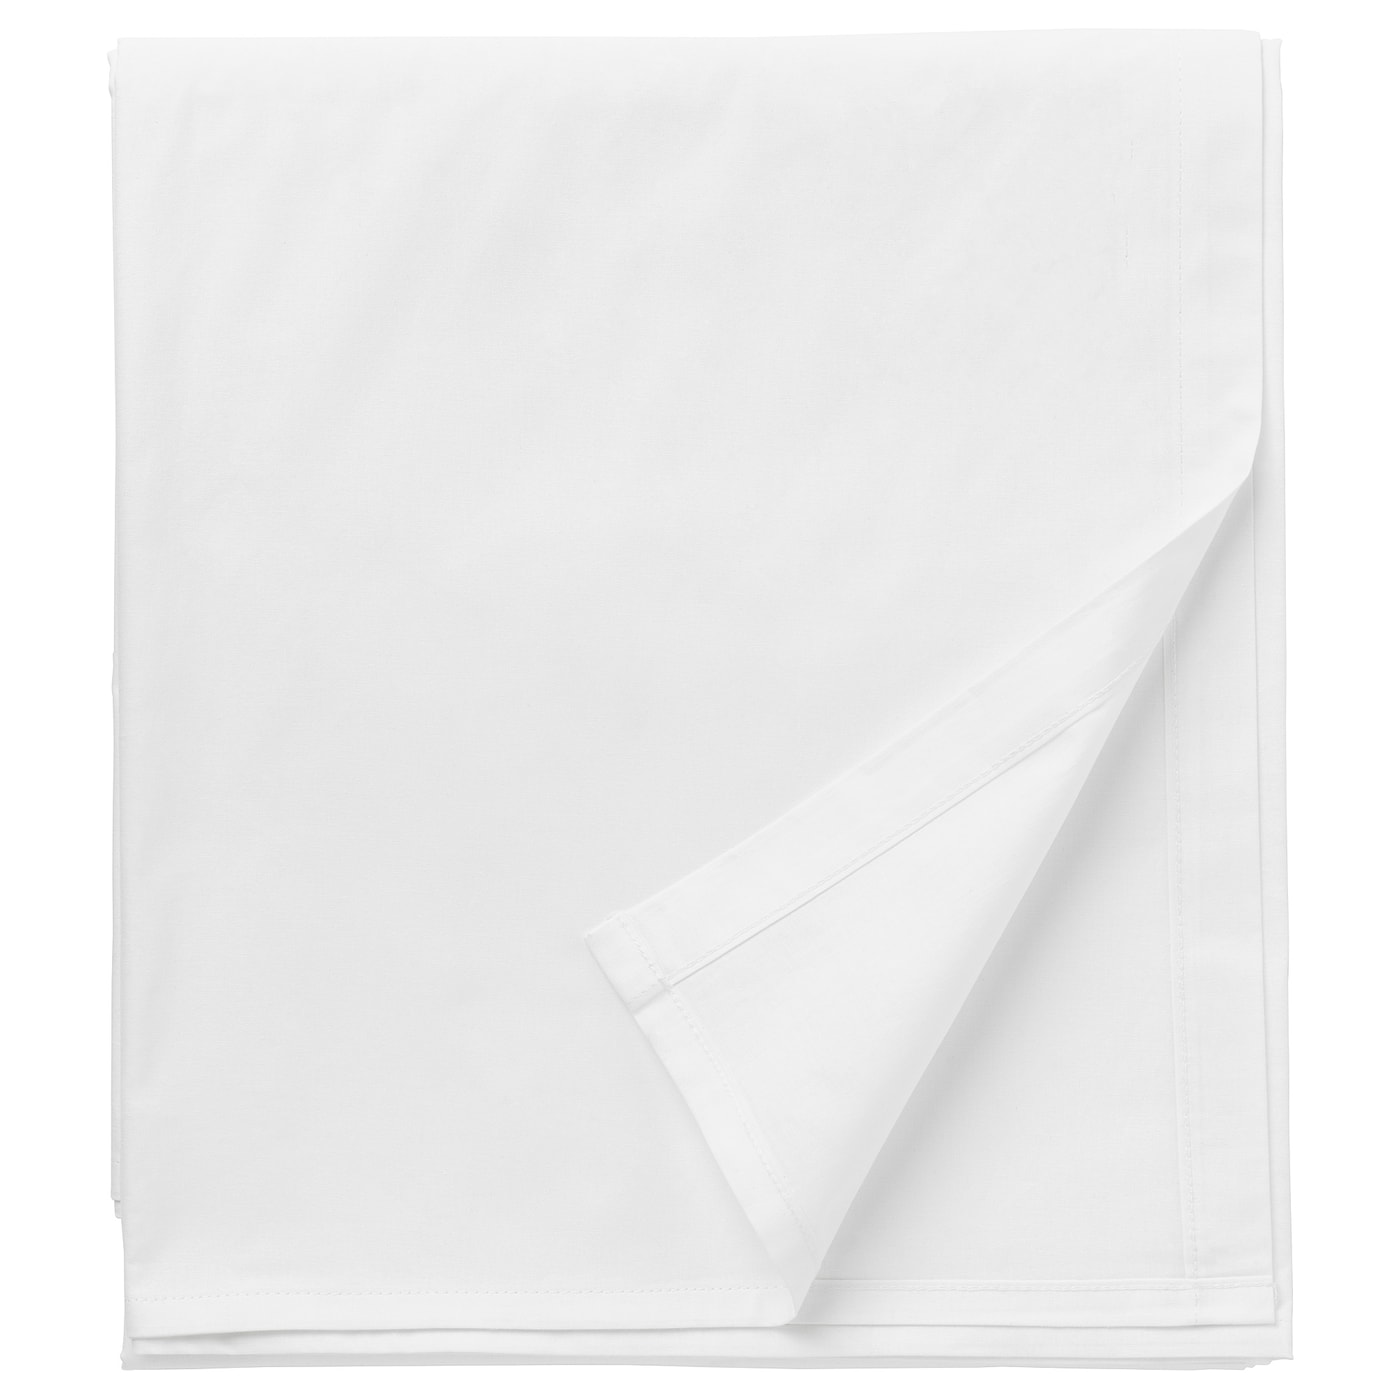 IKEA DVALA sheet Pure cotton that feels soft and nice against your skin.